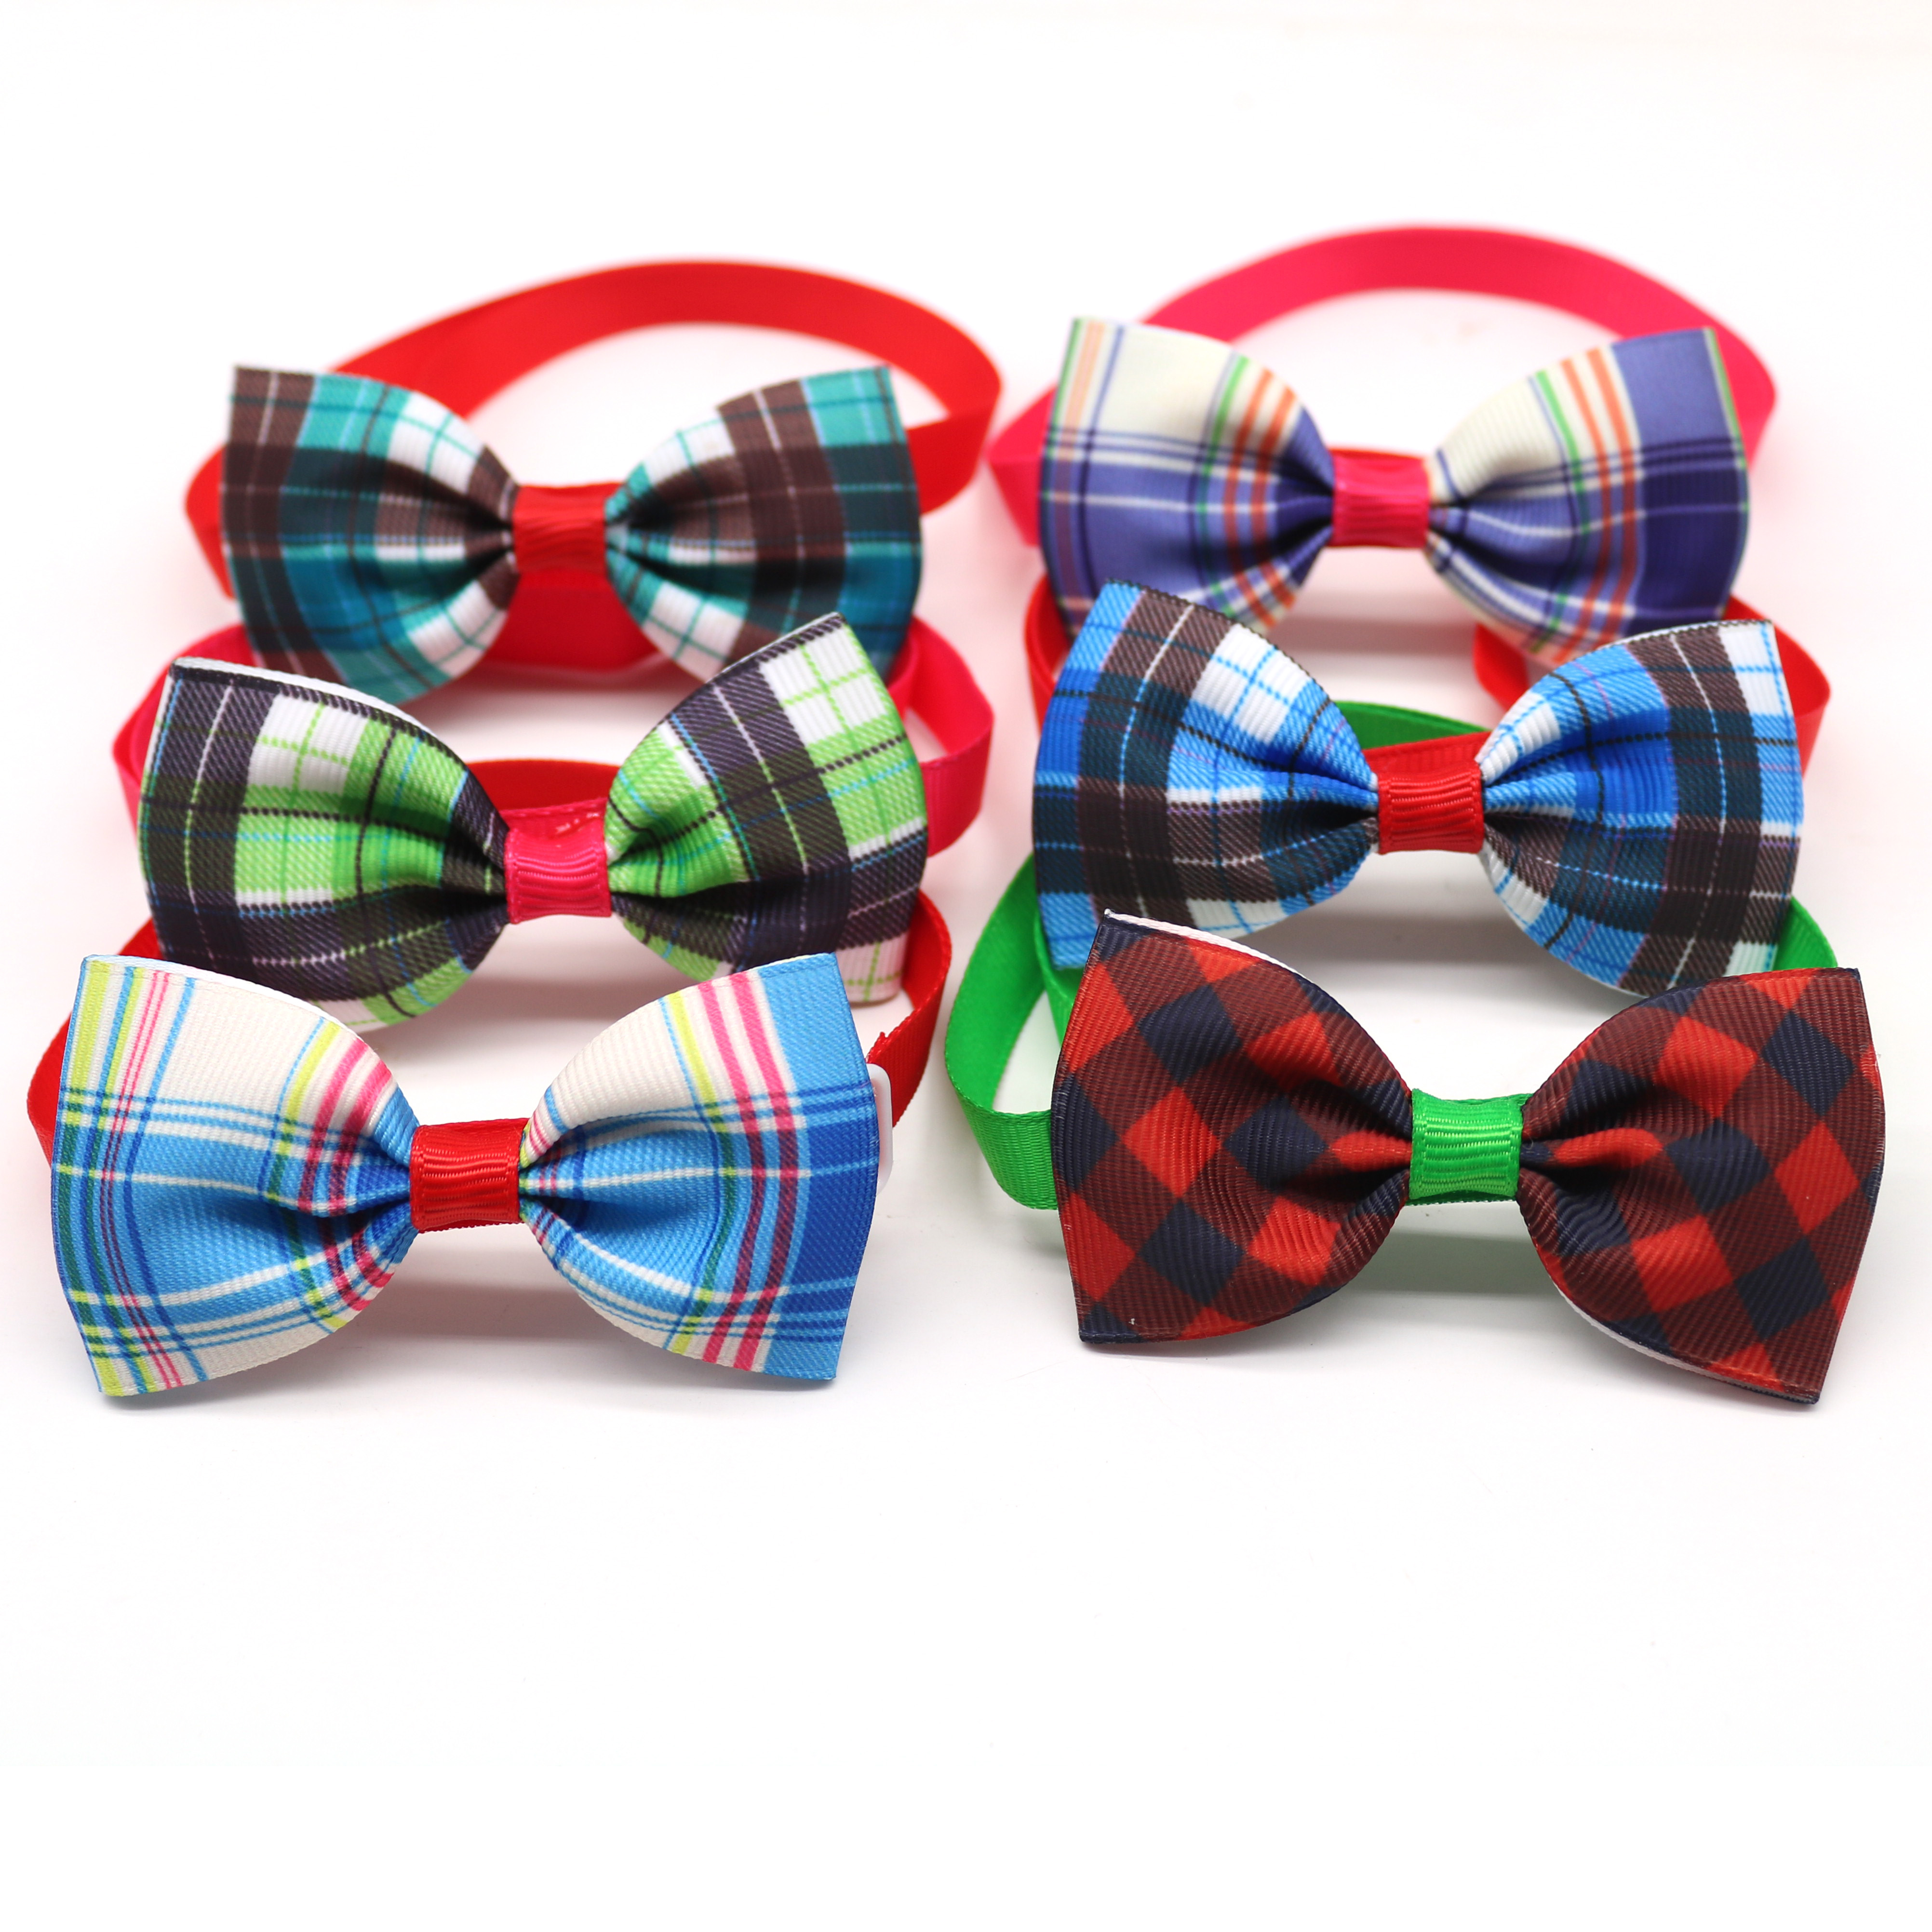 60 Pcs font b Pet b font Supplier Grid Design Dog Cat Bow Tie Adjustable Dog